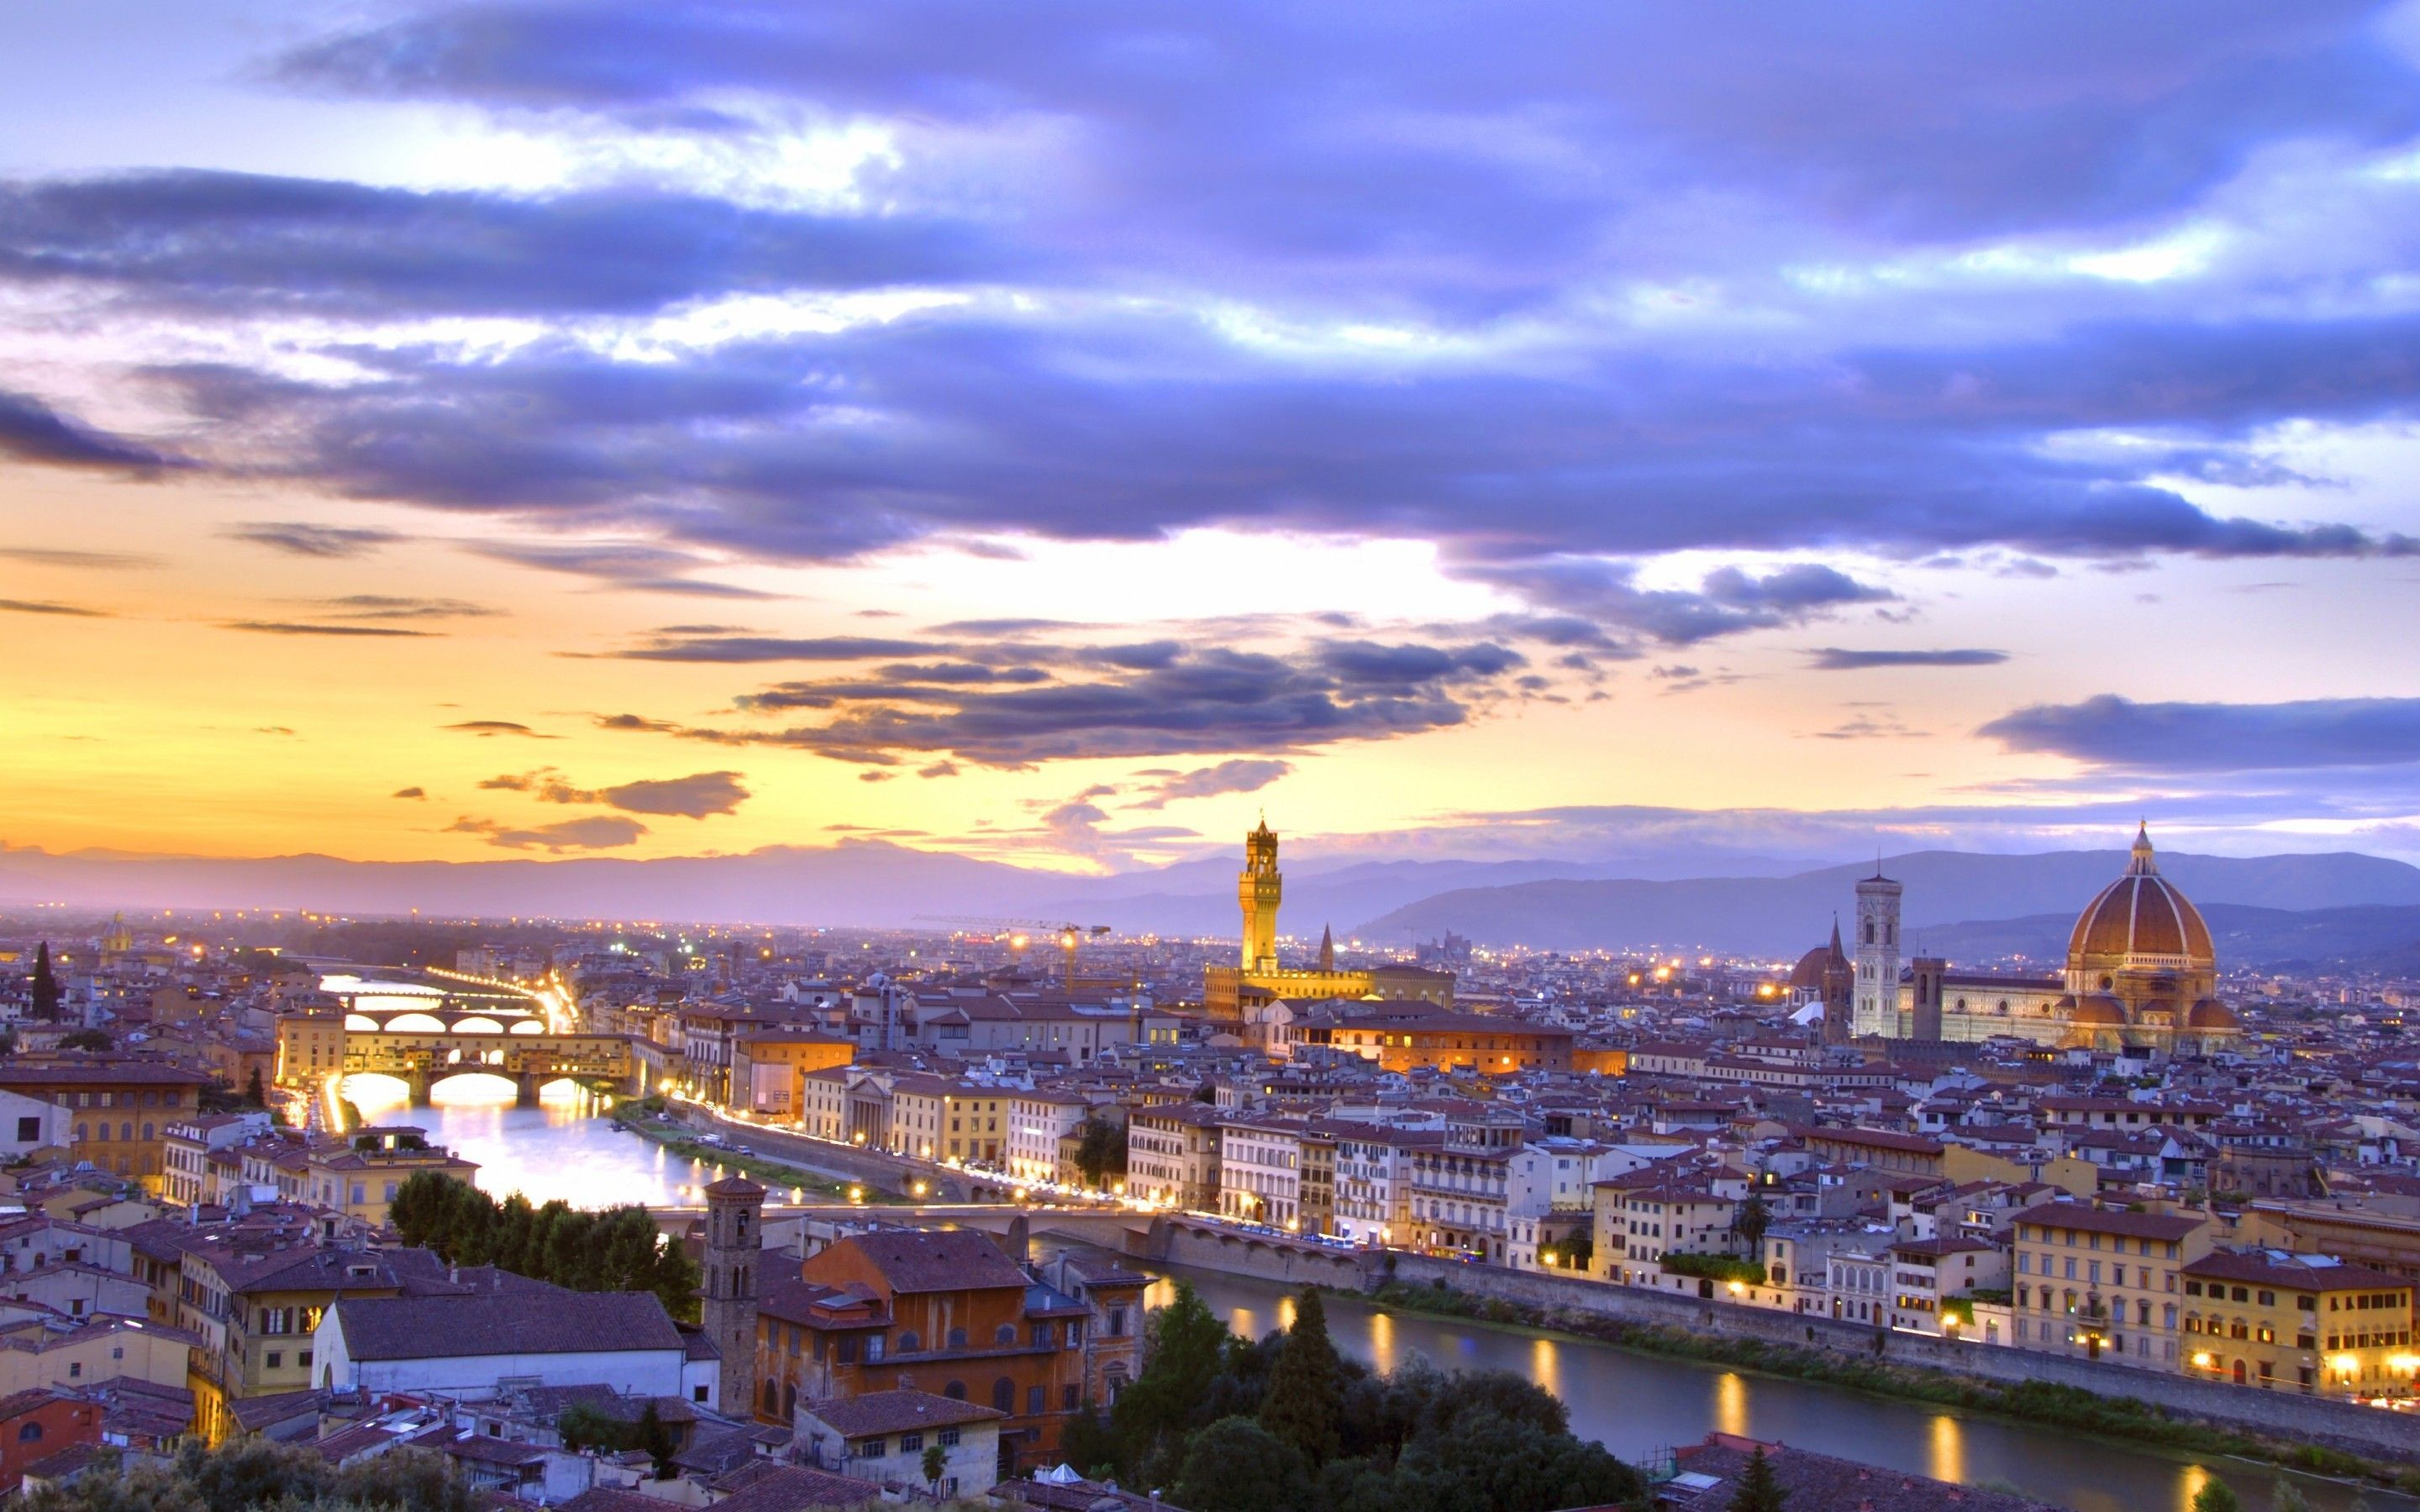 2880x1800 Download 2880x1800 Italy, Florence, Canal, Sunset, Cityscape ...